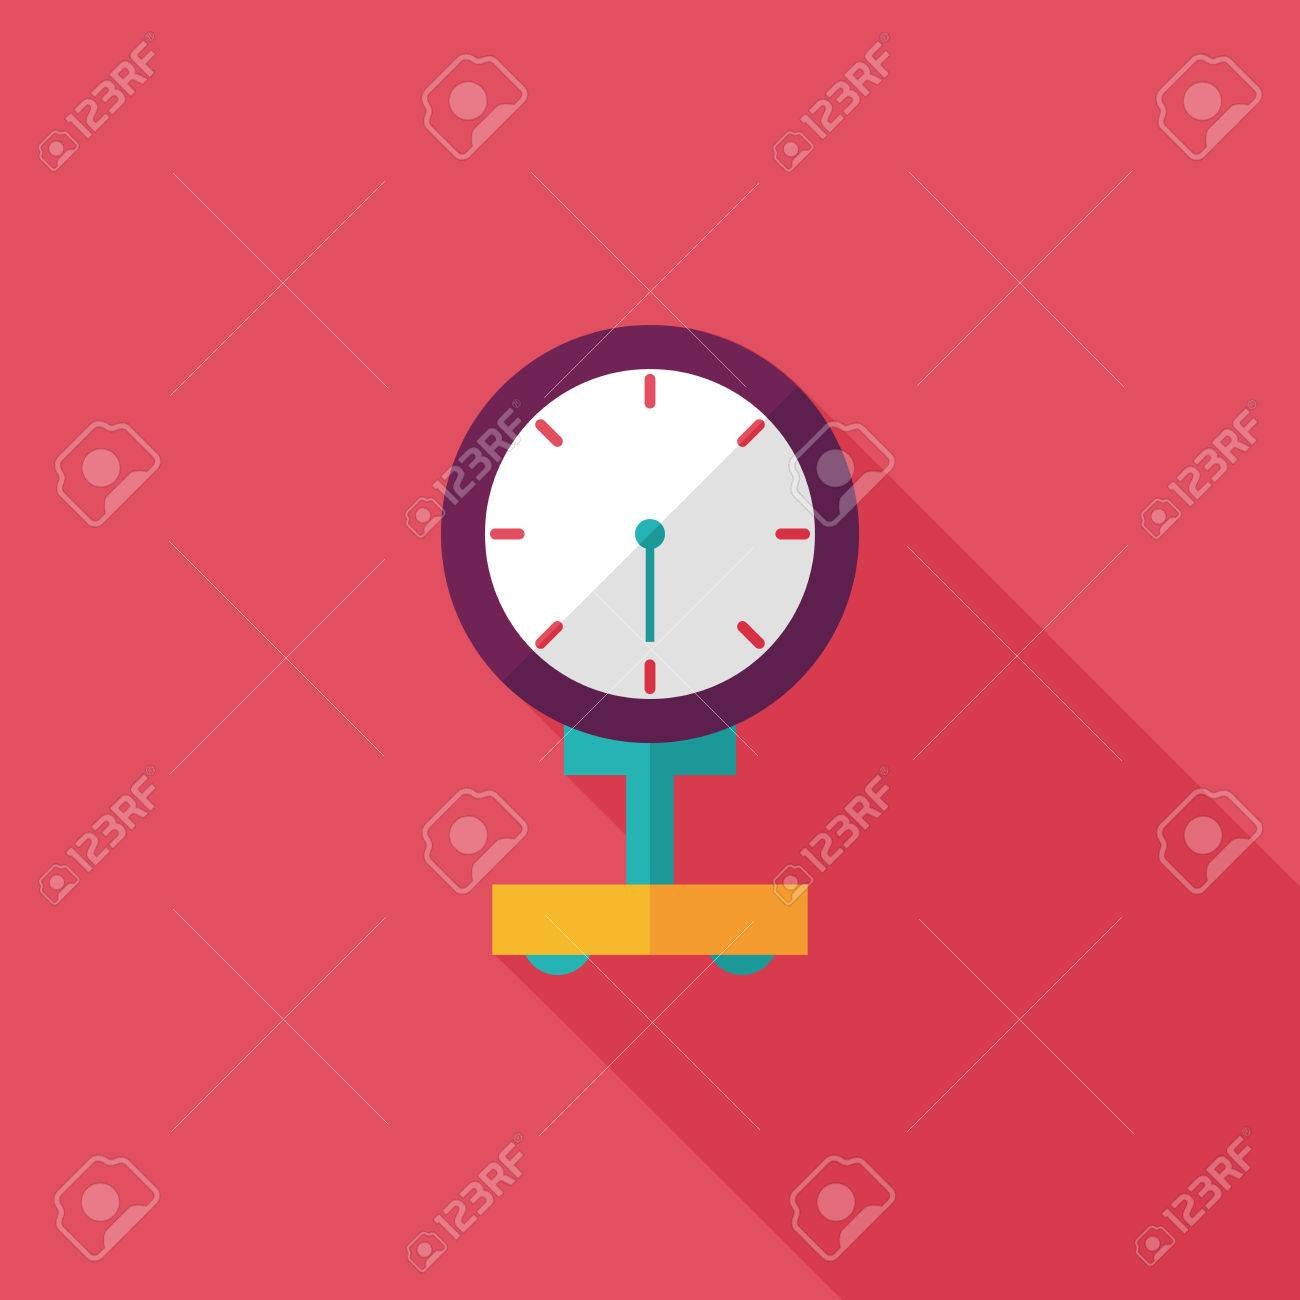 weight scale flat icon with long shadow - 31697947